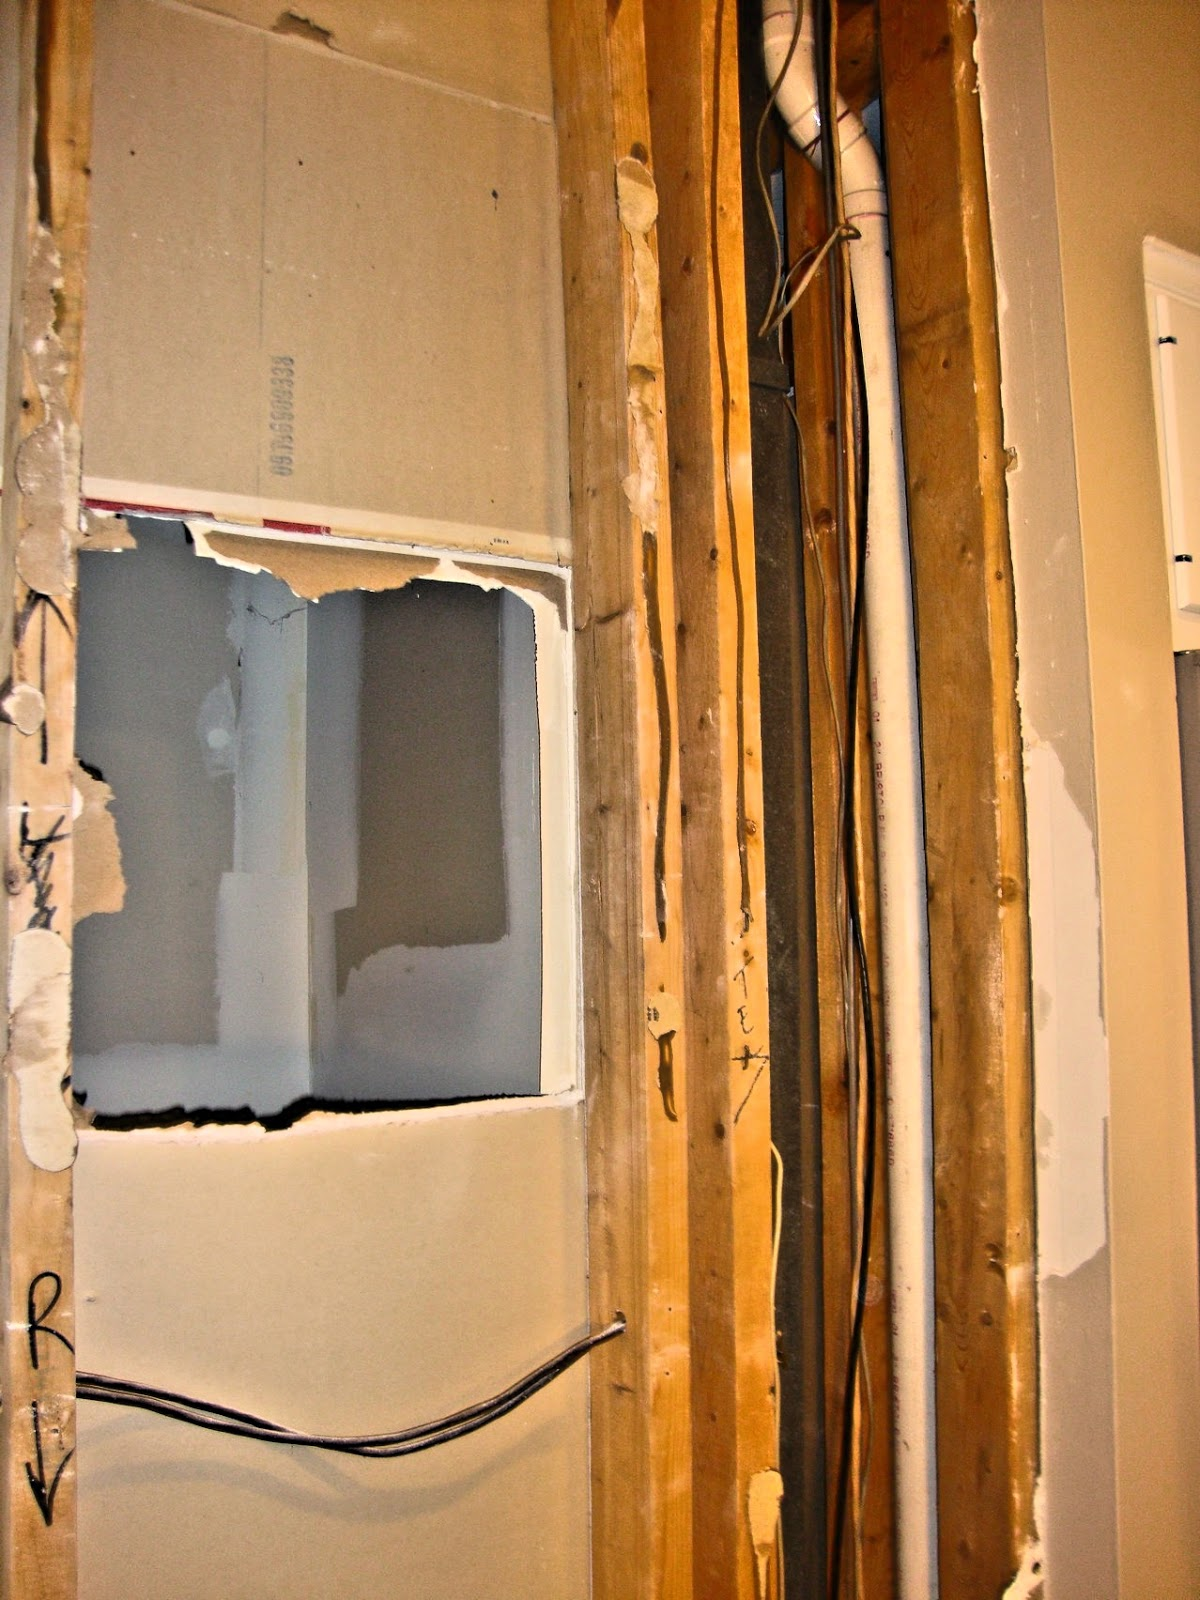 Old House Renovation Methods September 2014 Electrical Wiring Outer Drywall Ripped Off That Is Inner Like A Phone Booth Sized Room